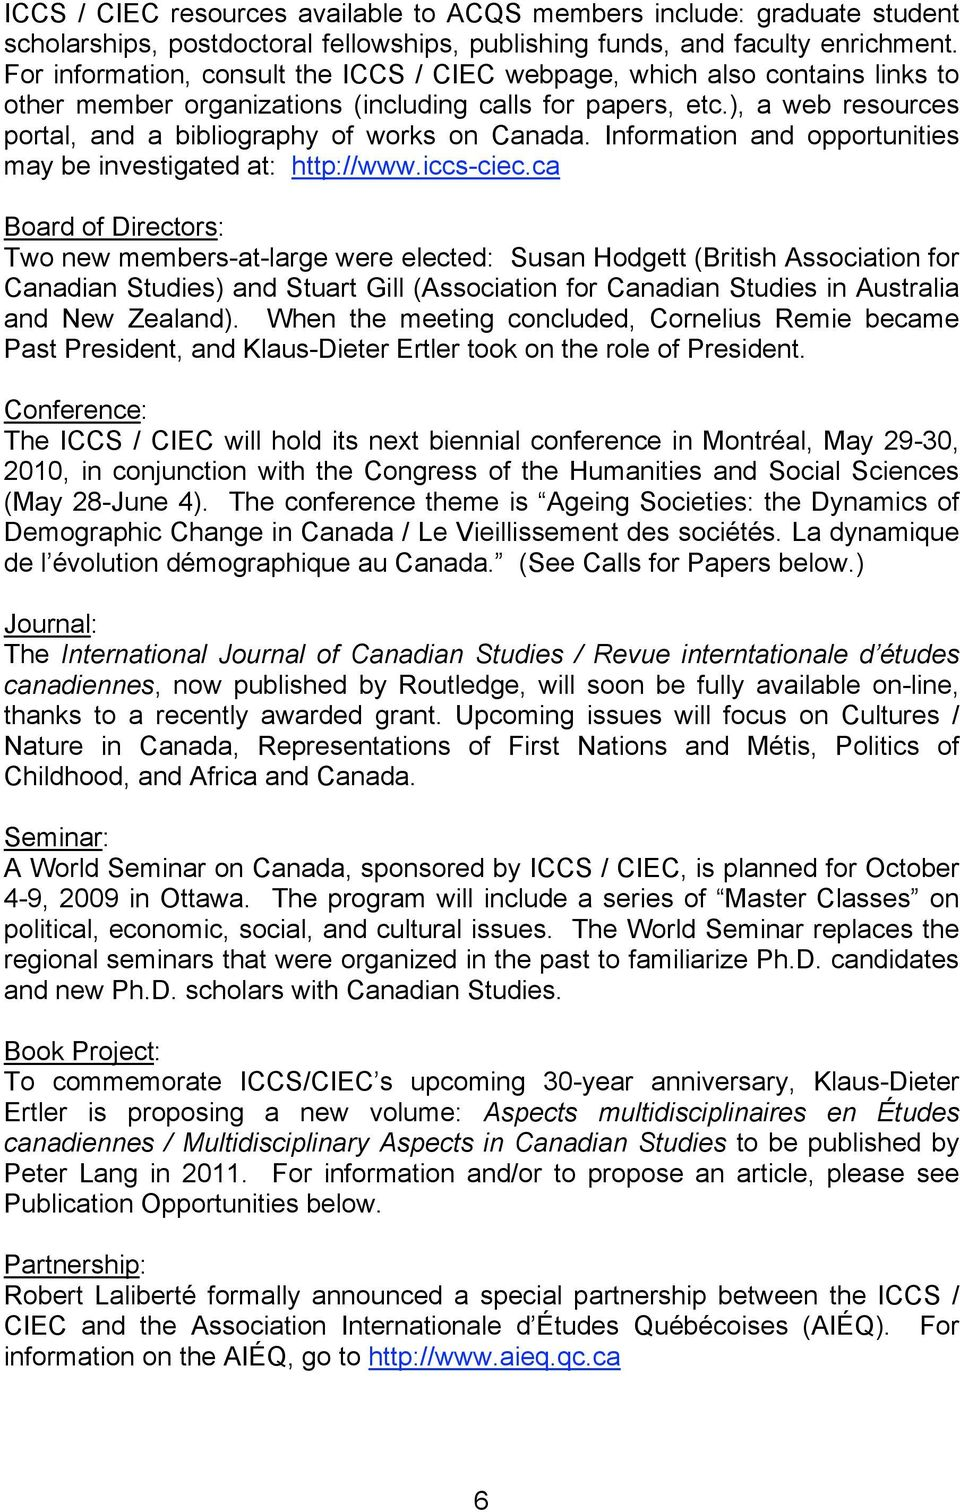 ), a web resources portal, and a bibliography of works on Canada. Information and opportunities may be investigated at: http://www.iccs-ciec.